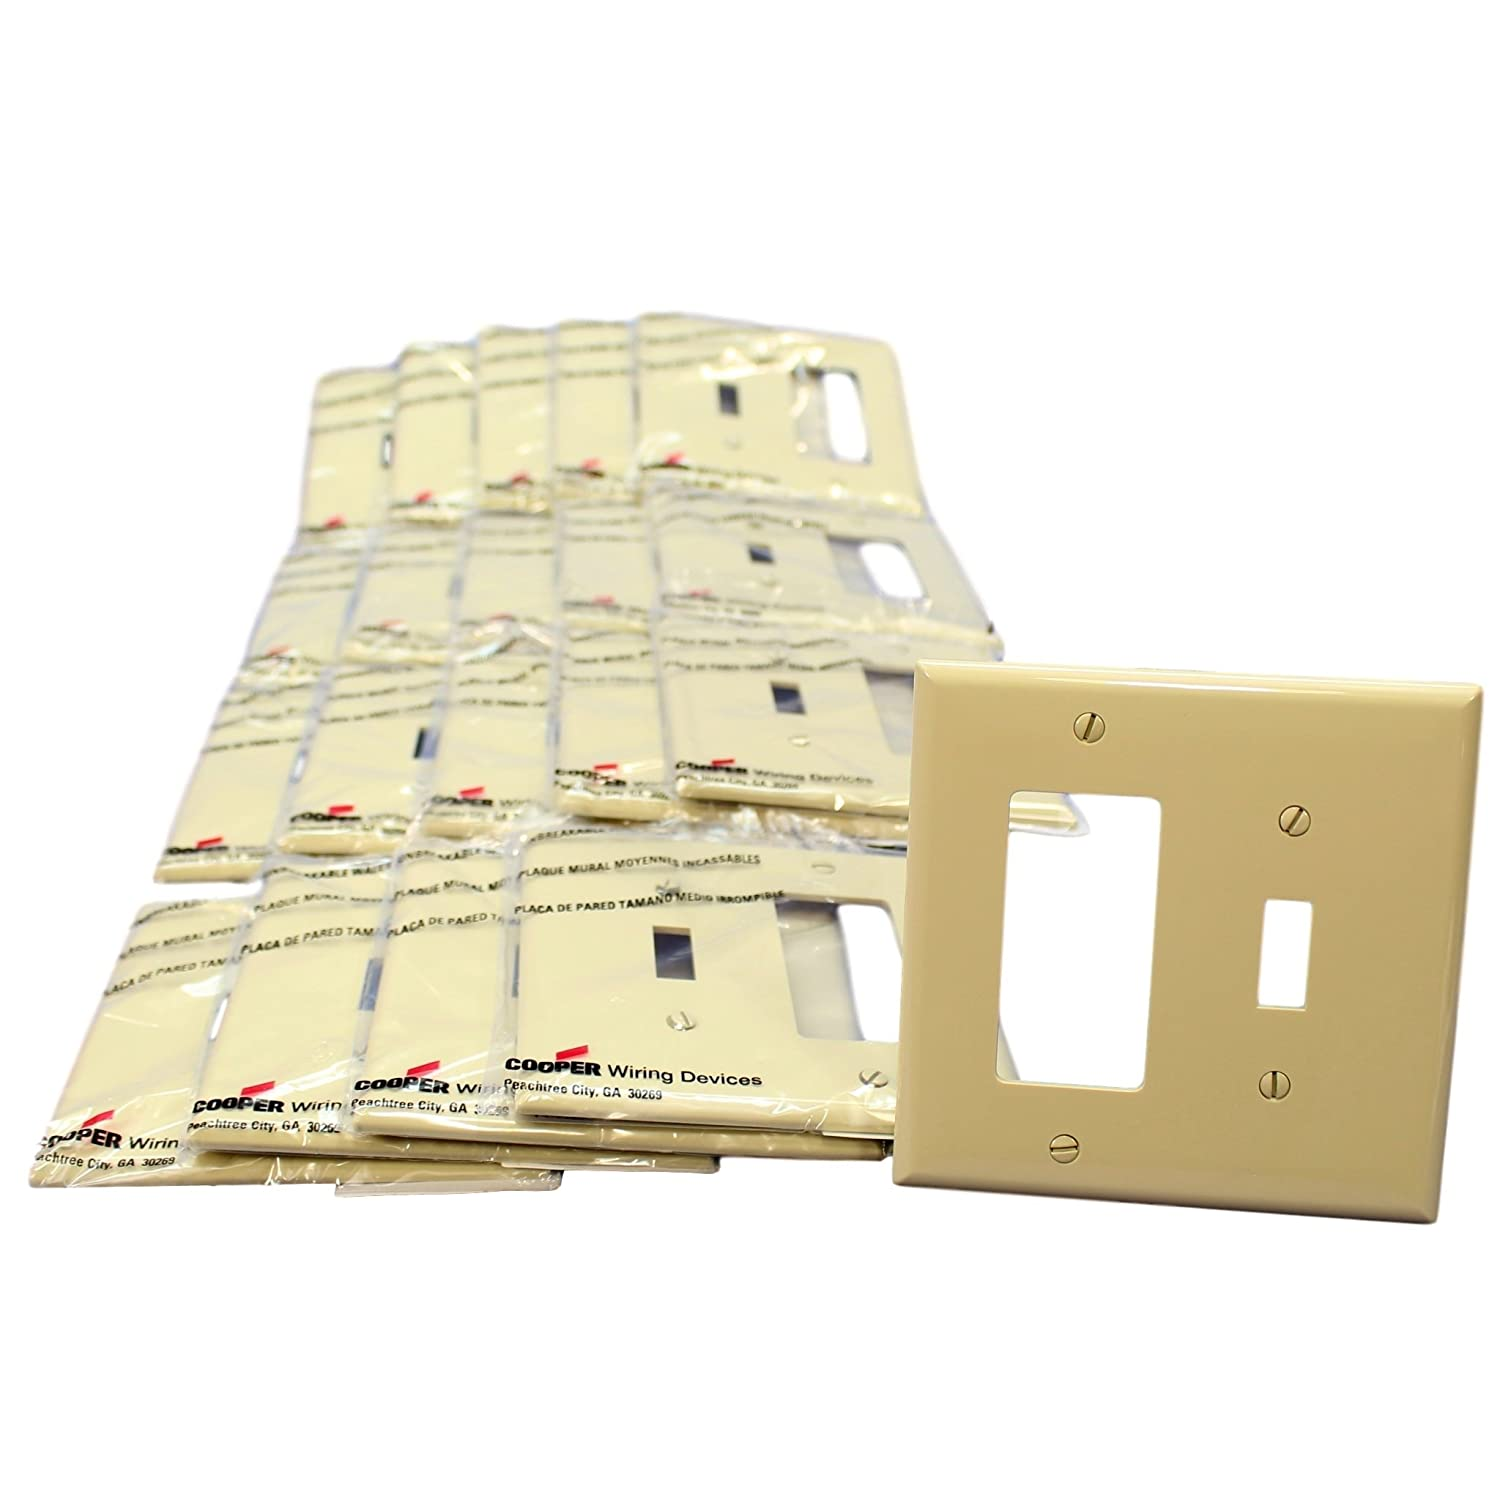 Cooper Pj126v Ivory Mid Size Unbreakable Two Gang One Toggle Wiring Wall Plates Decorator Combination Plate Pack Of 20